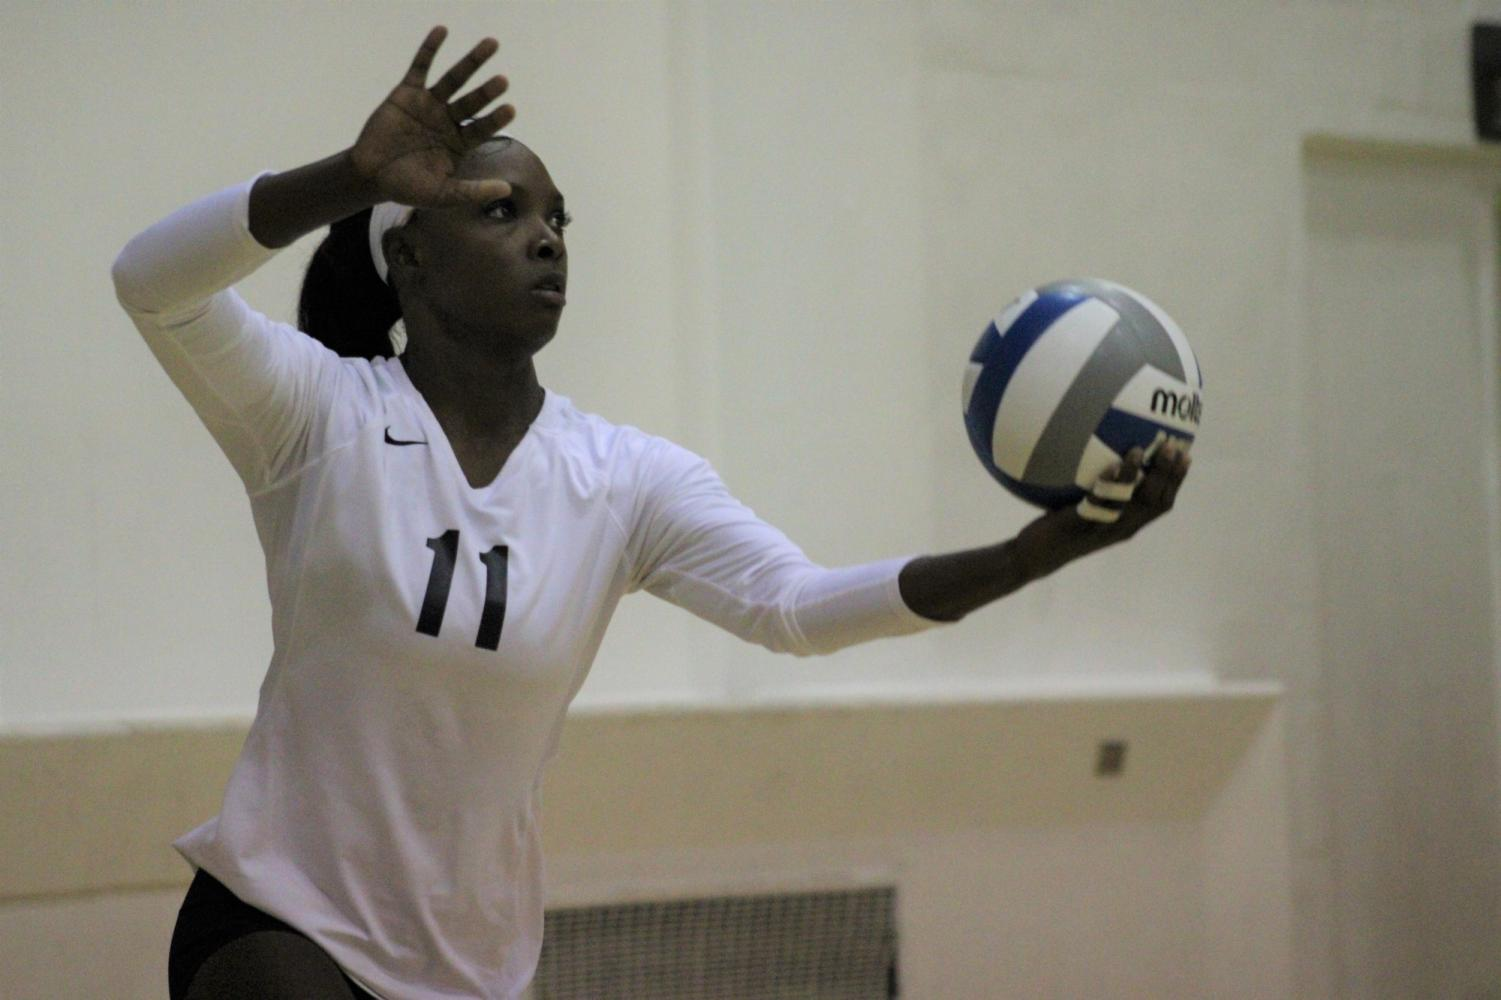 El Camino College outside hitter Mikayla Clark prepares to serve the ball during the second set of the match against Mt. San Antonio College on Wednesday, Oct. 2, in ECC's South Gym. The women's volleyball team has won nine matches in a row. Jaime Solis/The Union